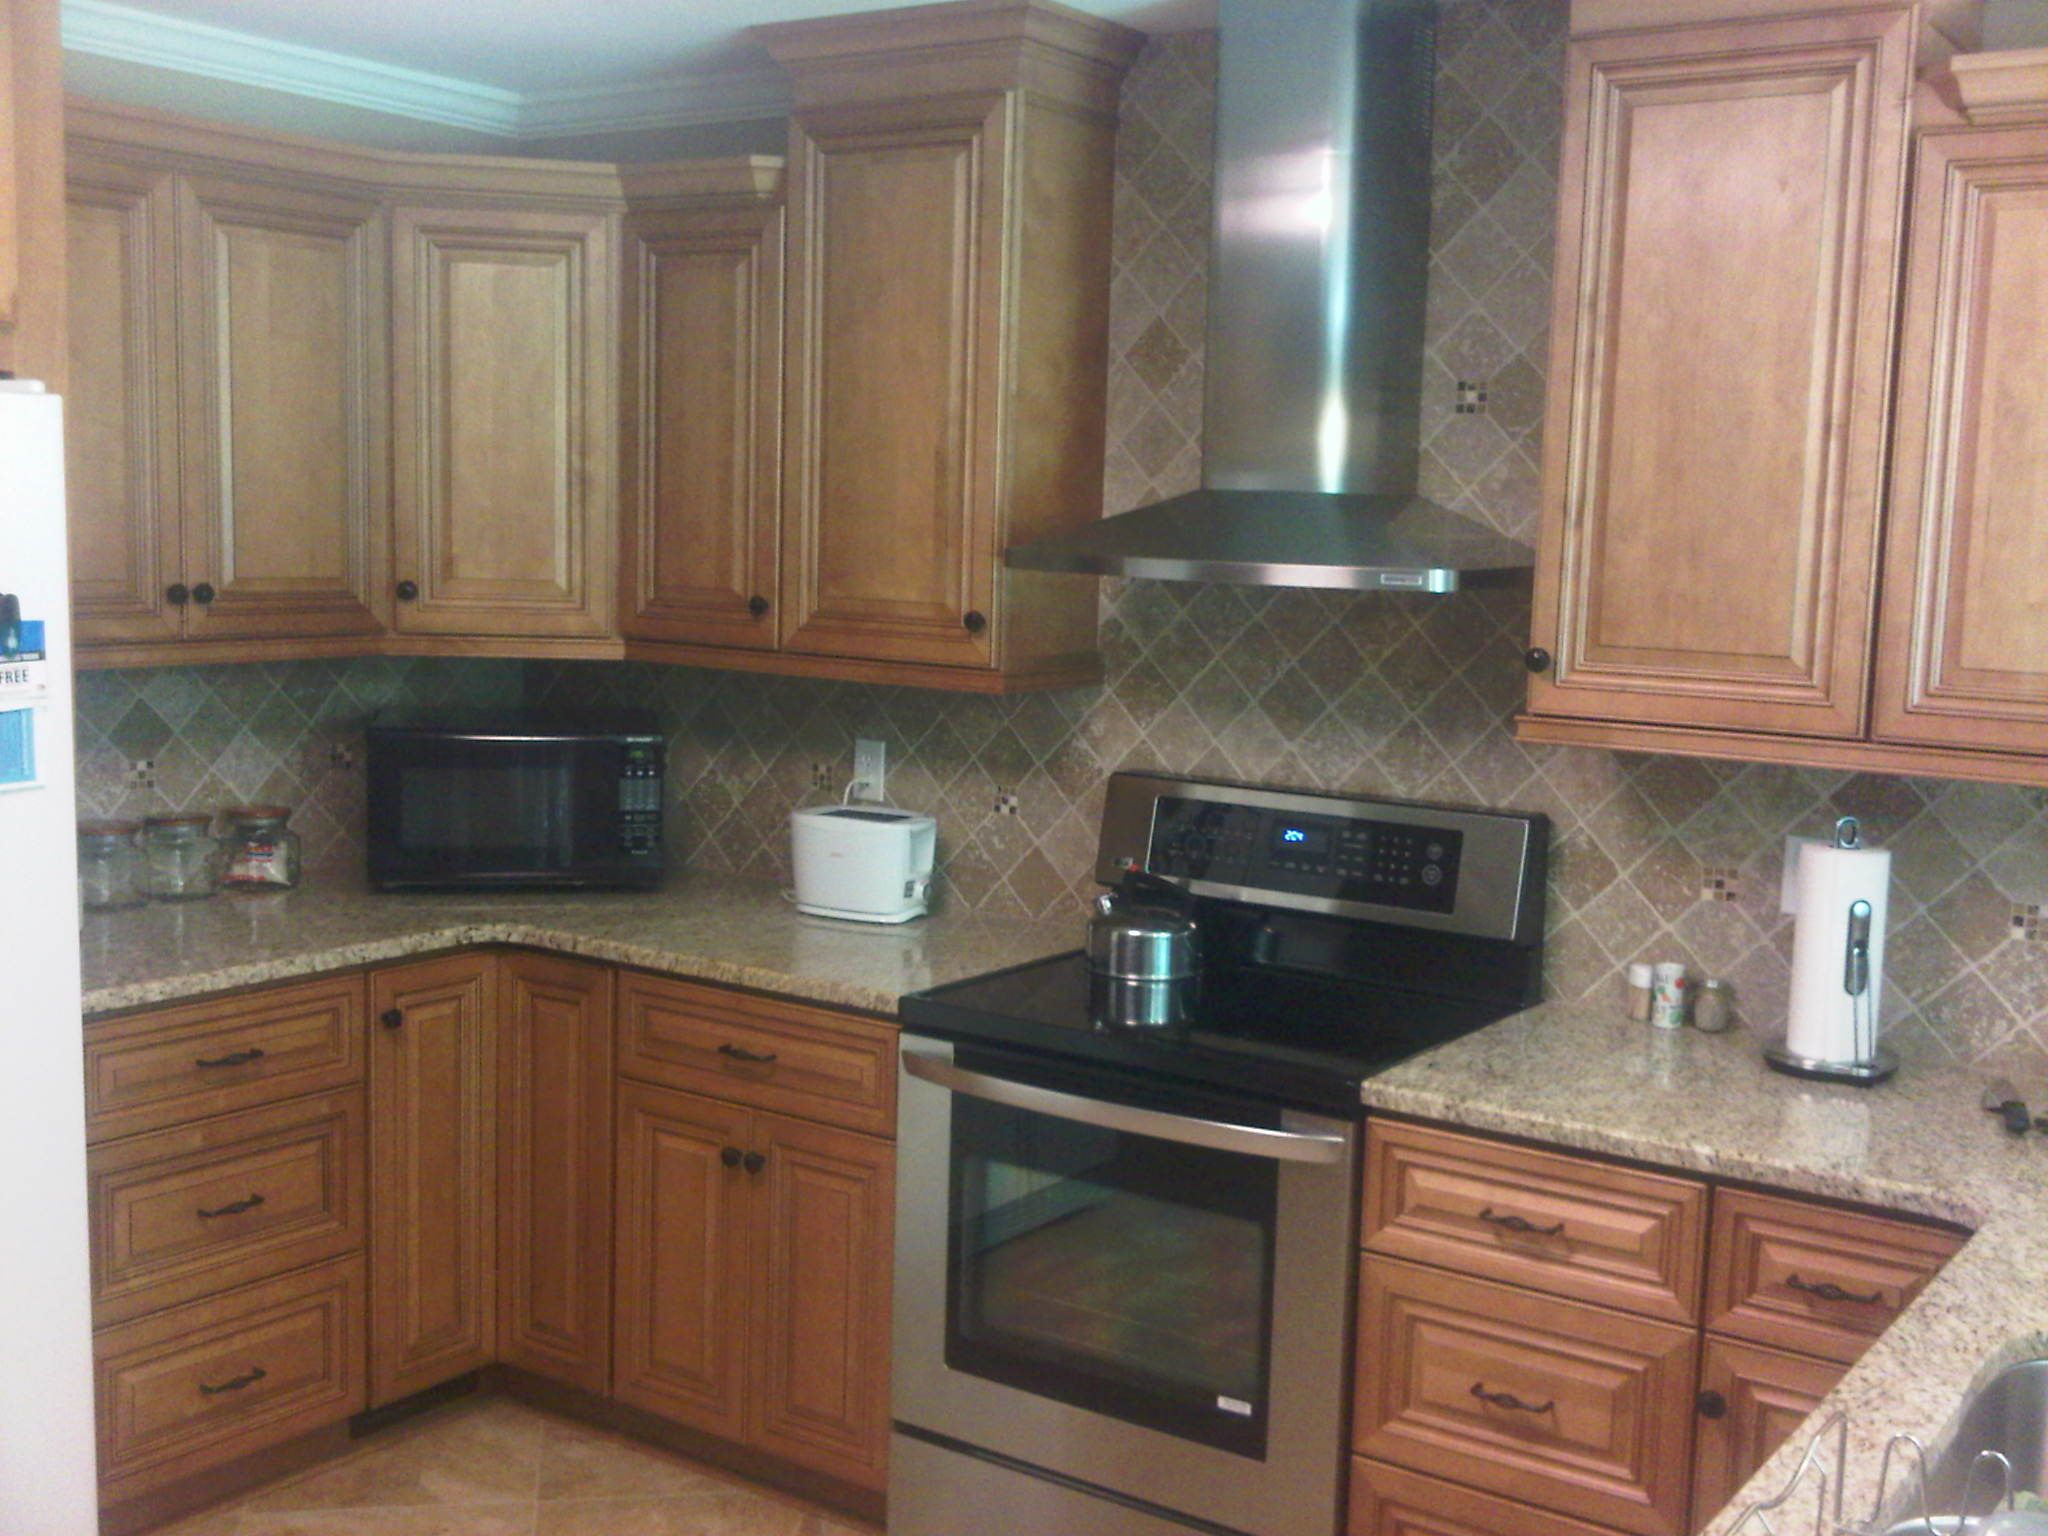 Cinnamon Maple Glaze Kitchen Cabinets I Like The Colors And S Pulls